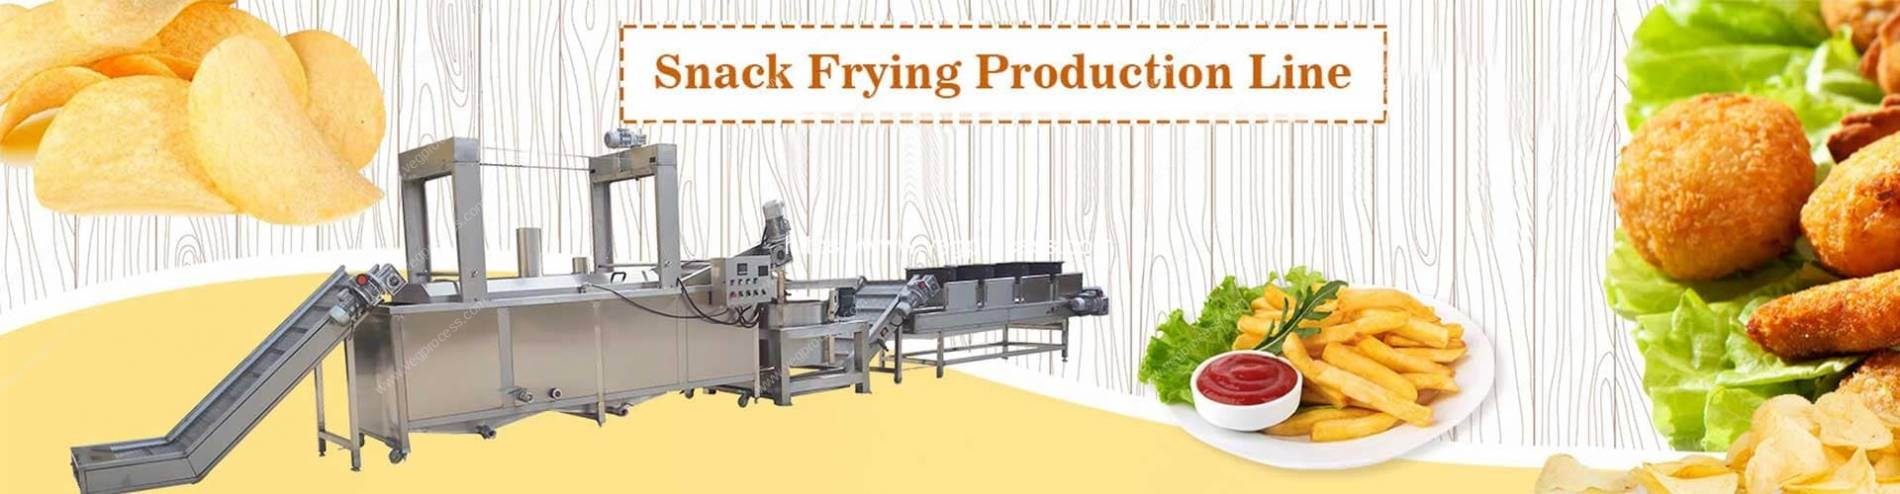 Banner02-Vegetable-Snack-Frying-Processing-Plant